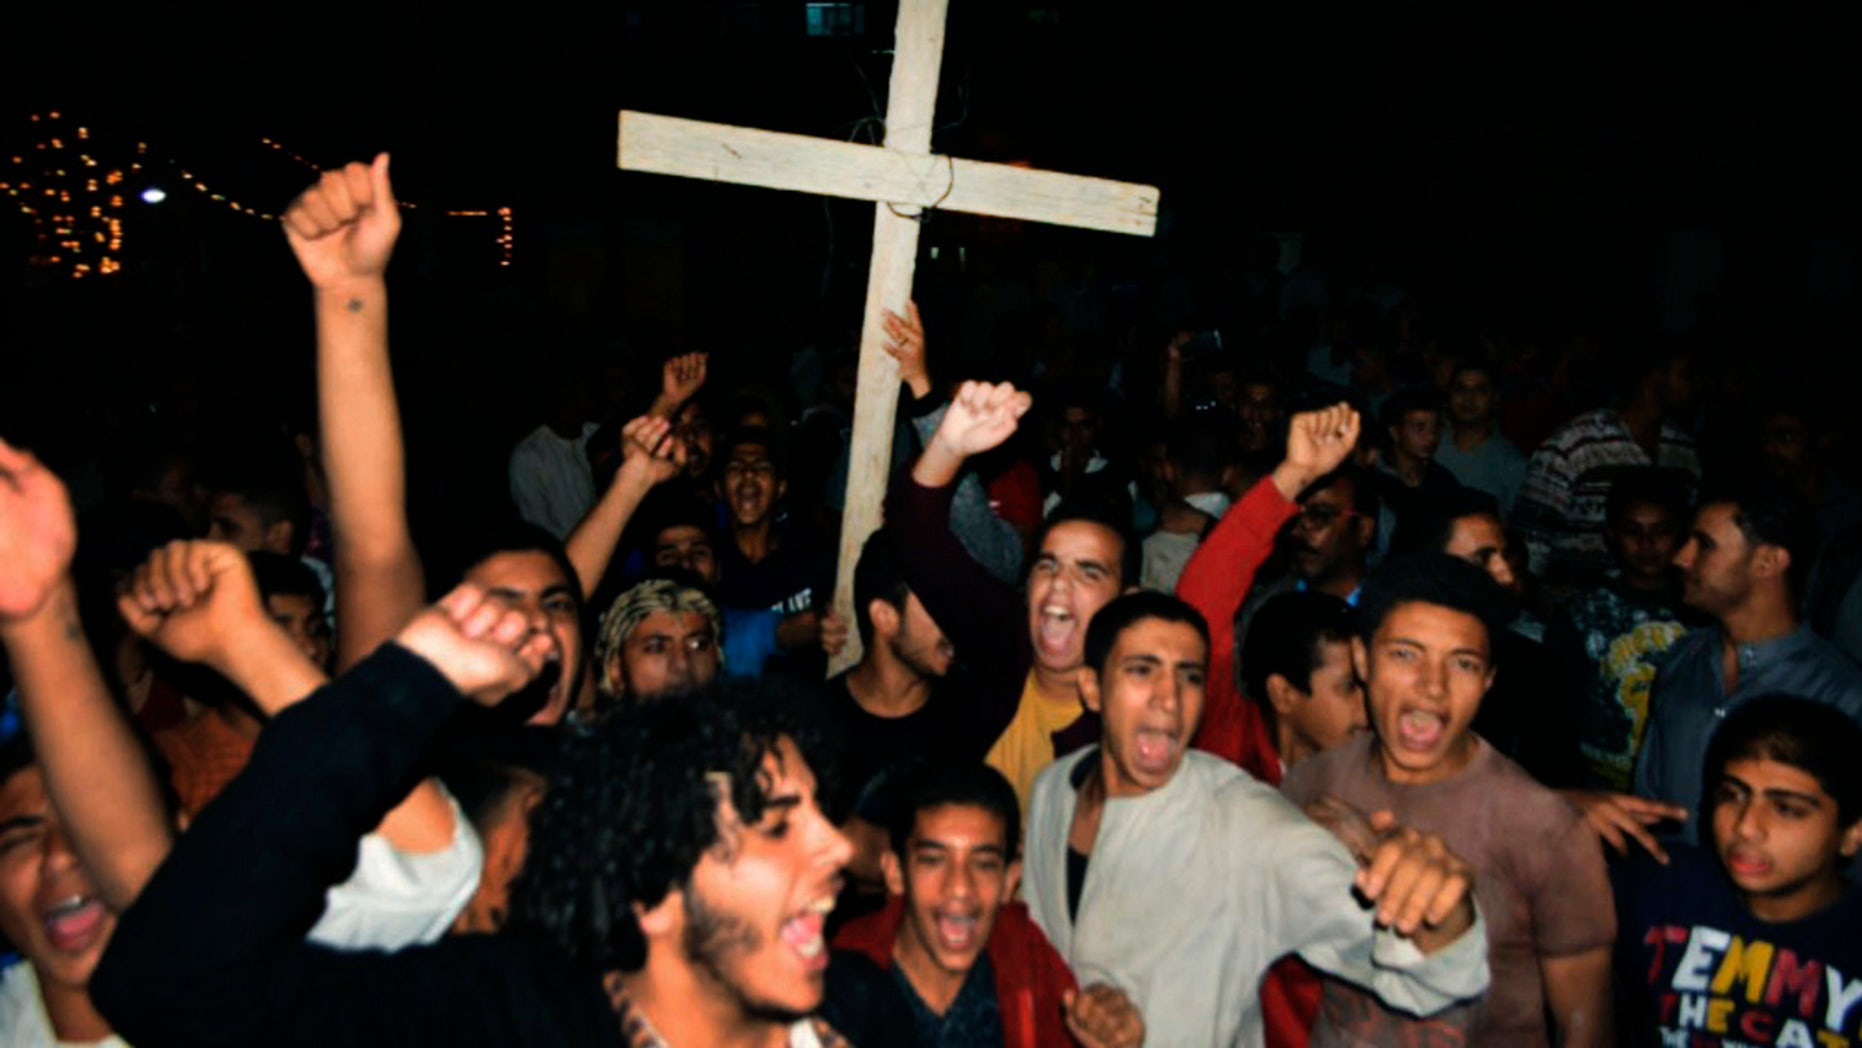 Coptic Christians chant slogans during a protest following an attack on a bus carrying Christian pilgrims on their way to a remote desert monastery, in Minya, Egypt, Friday, Nov. 2, 2018.